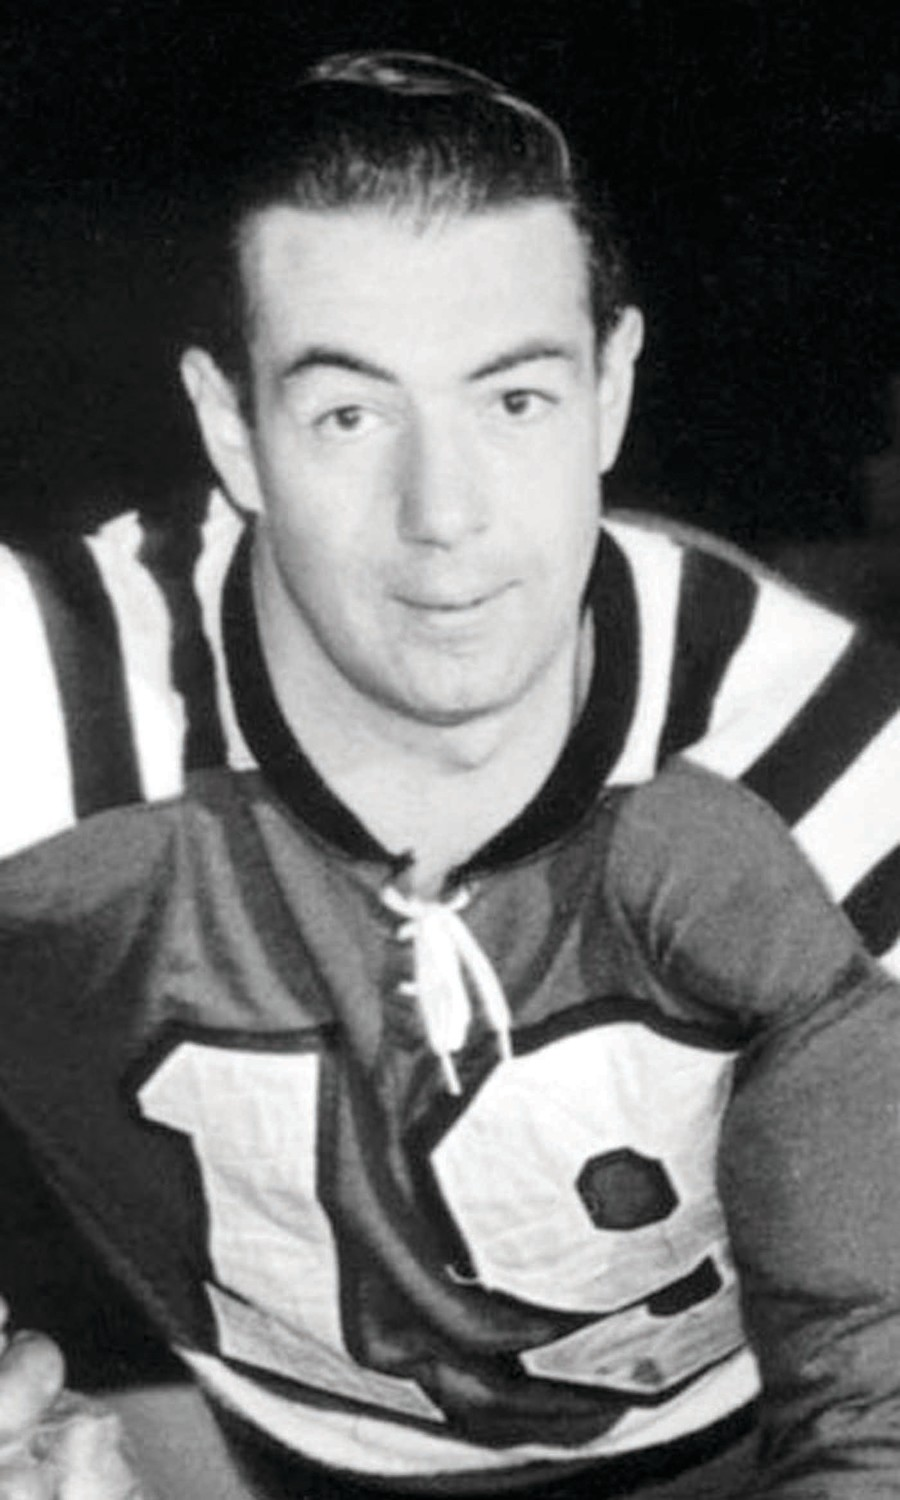 "MIGHTY MEMORIAL: The late Ray Ross, who played 10 seasons for the Rhode Island Reds and lived in what people call ""virtual hockey anonymity"" as he never got the chance to tryout for the NHL, is being remembered through the initial Ray Ross Perseverance Award that will be presented on Sunday, Aug. 5 in Warwick."